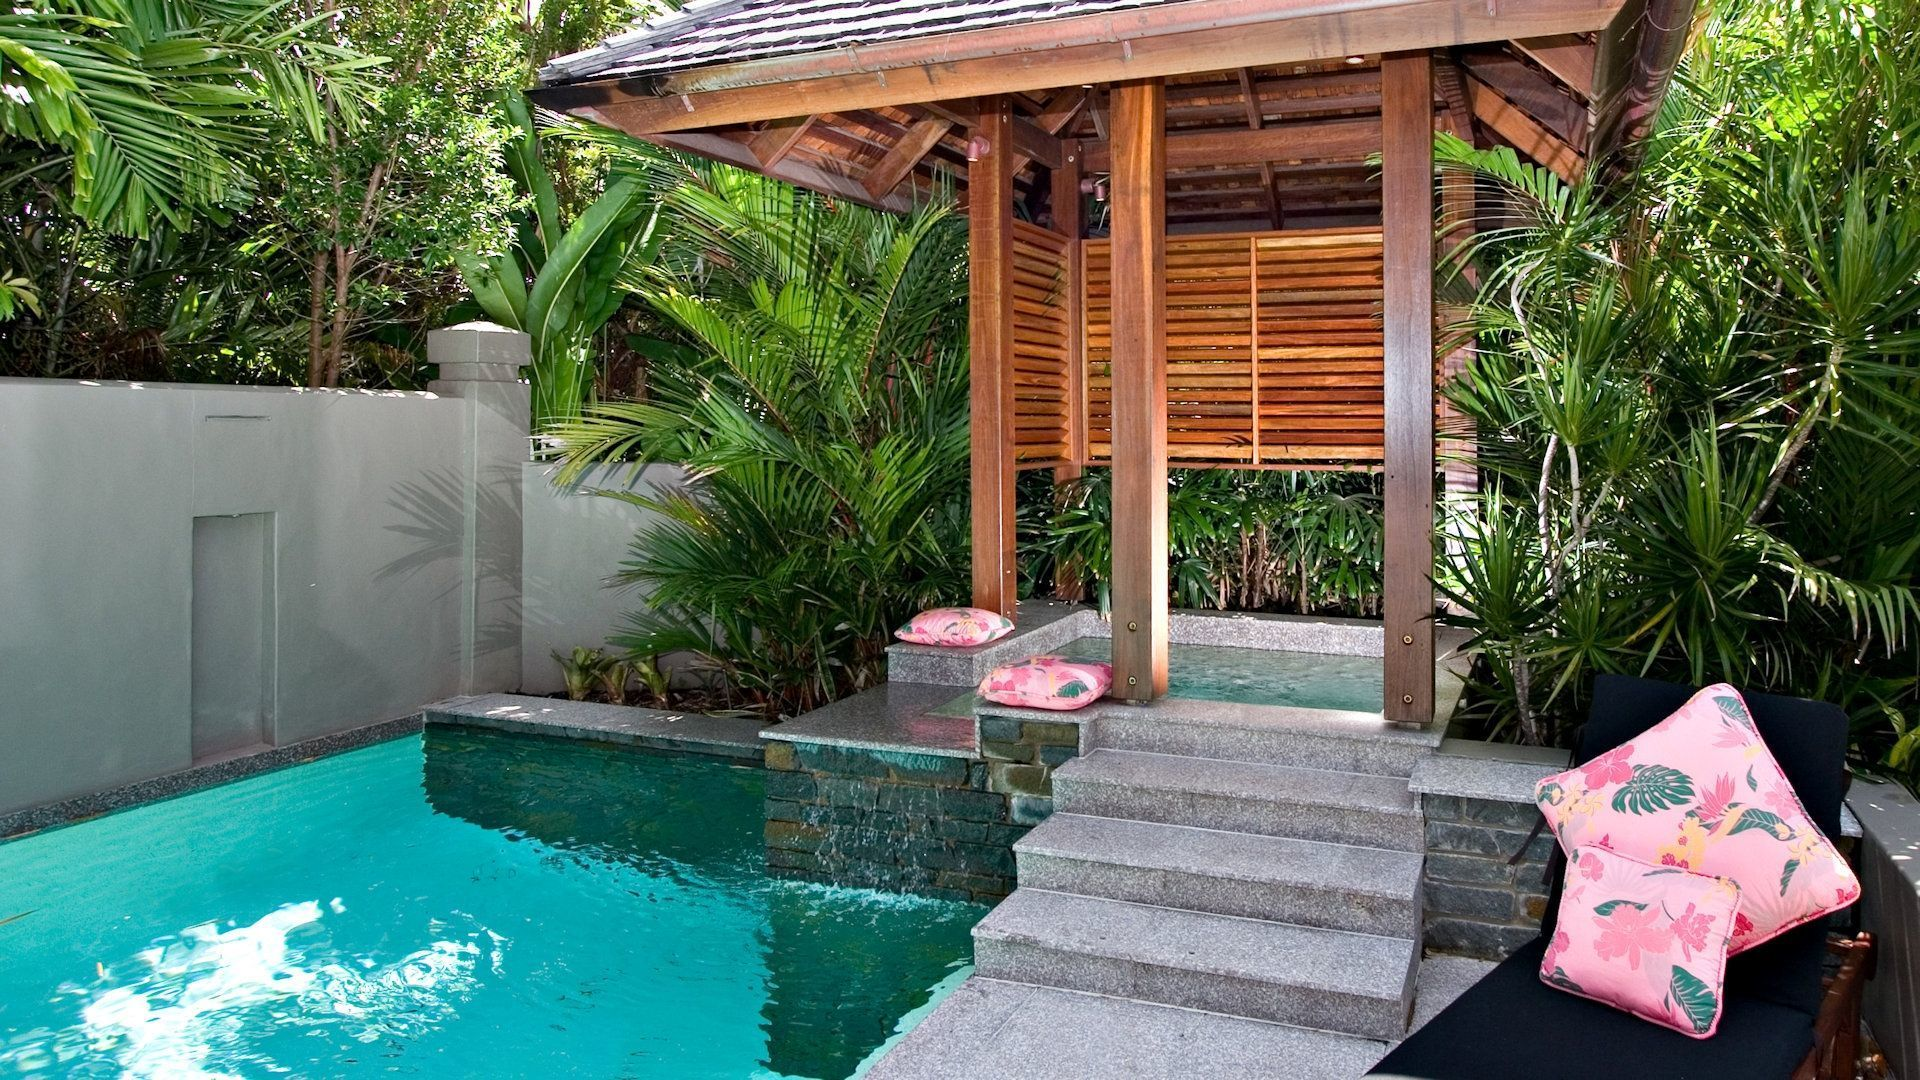 The Bali House 001